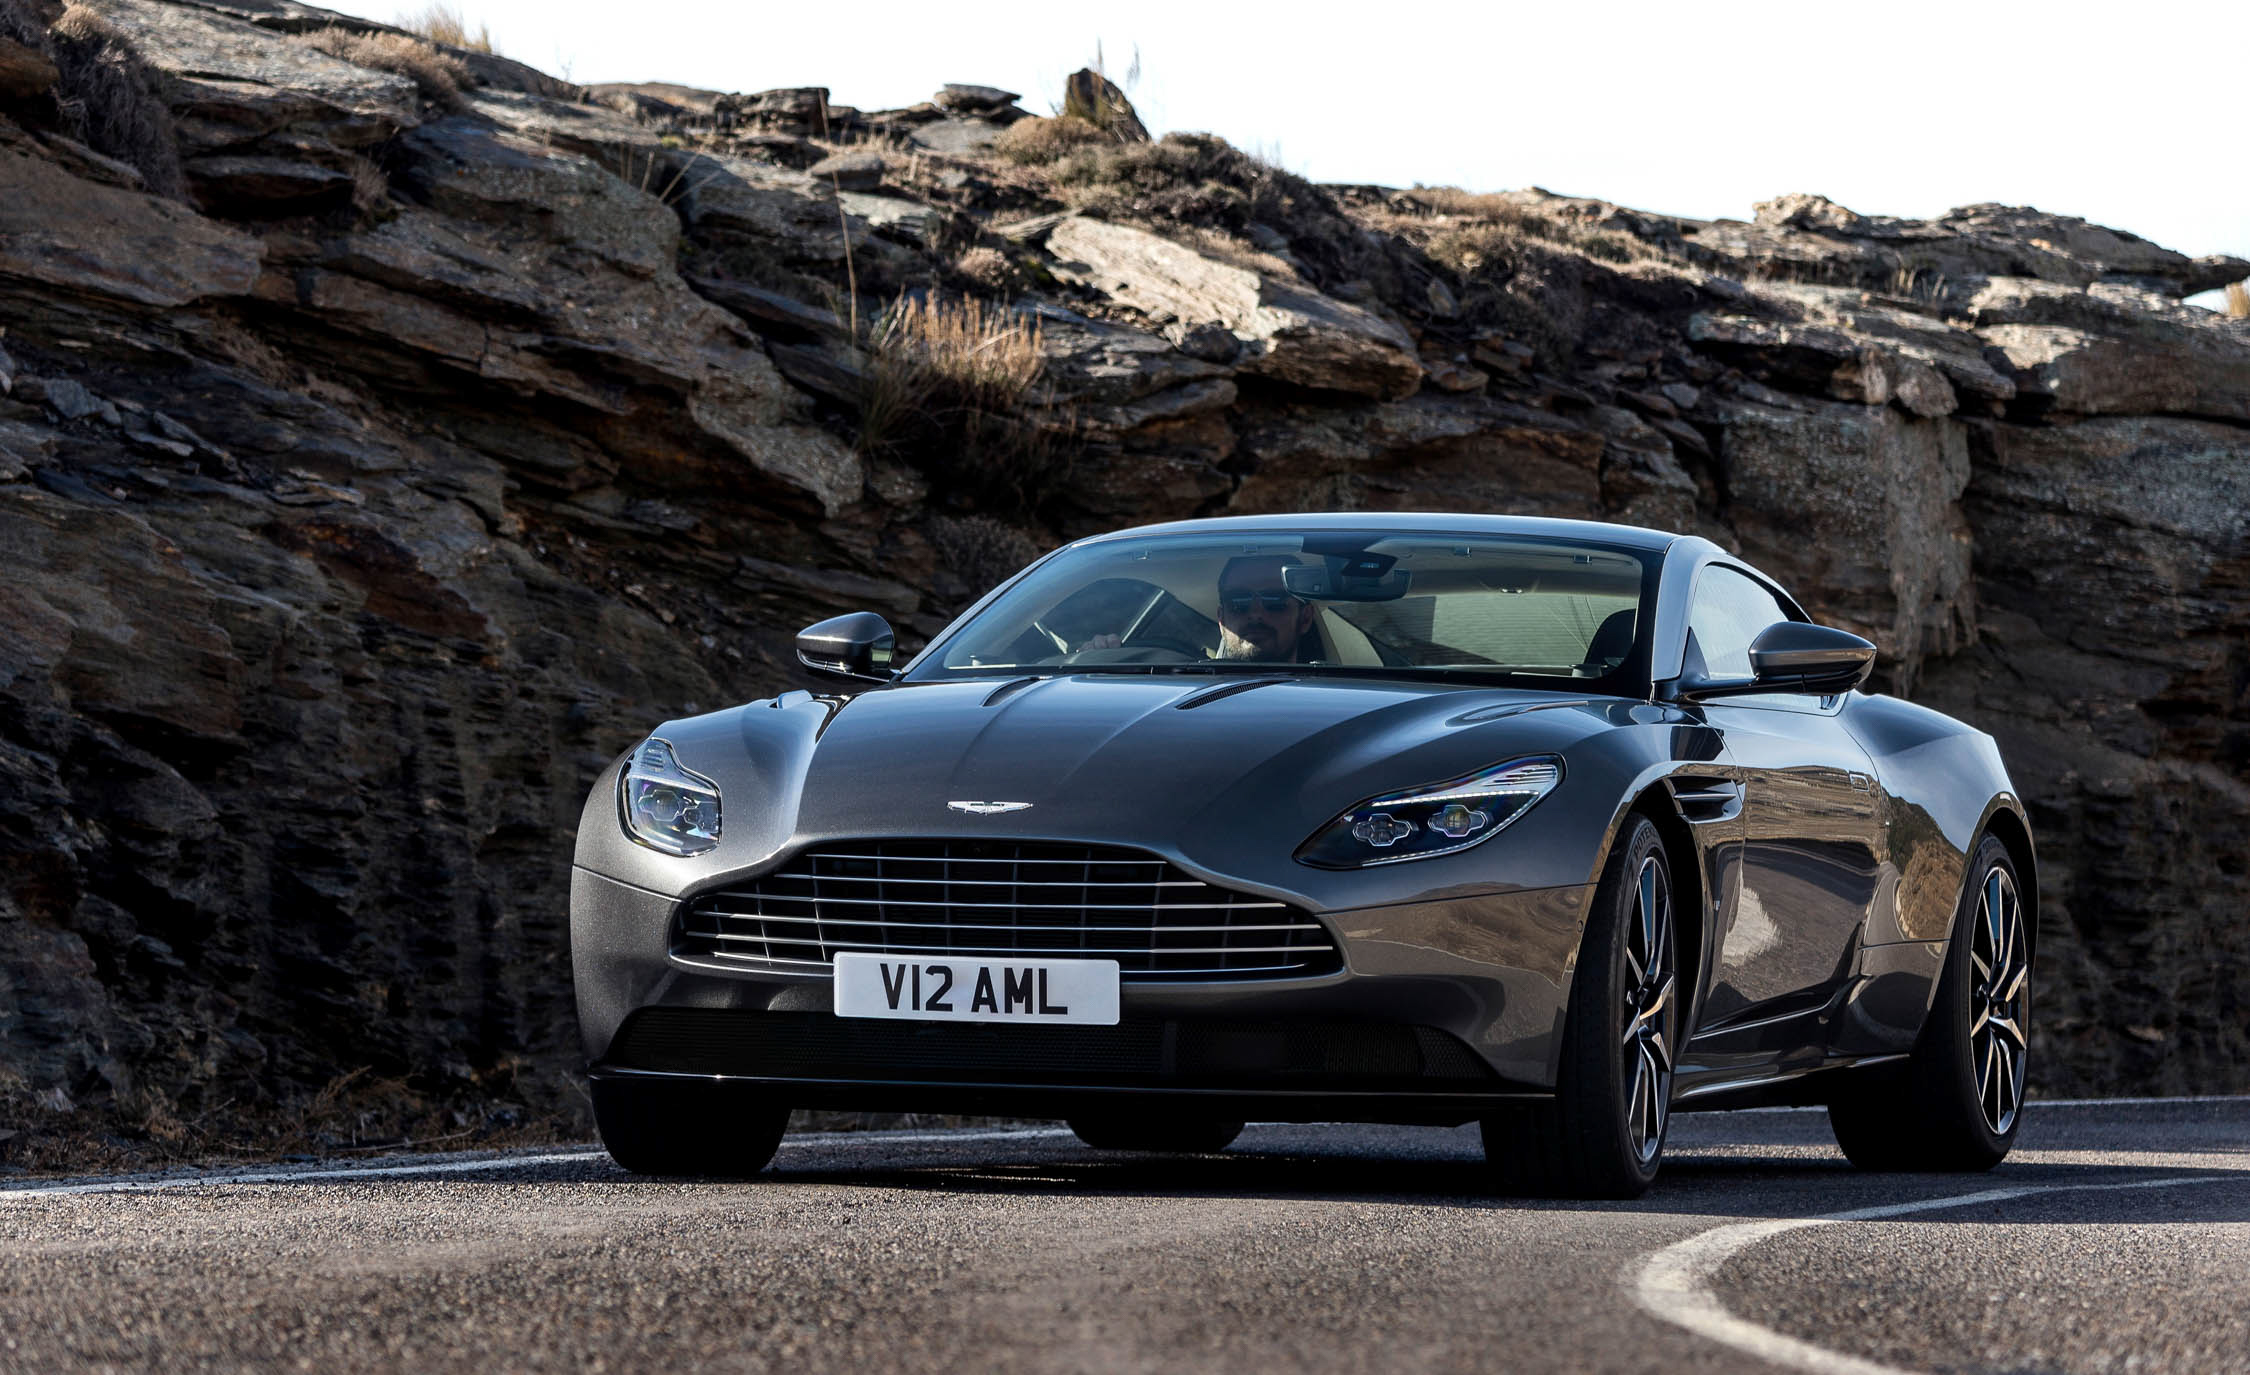 2017 Aston Martin Db11 Exterior Front (View 21 of 22)